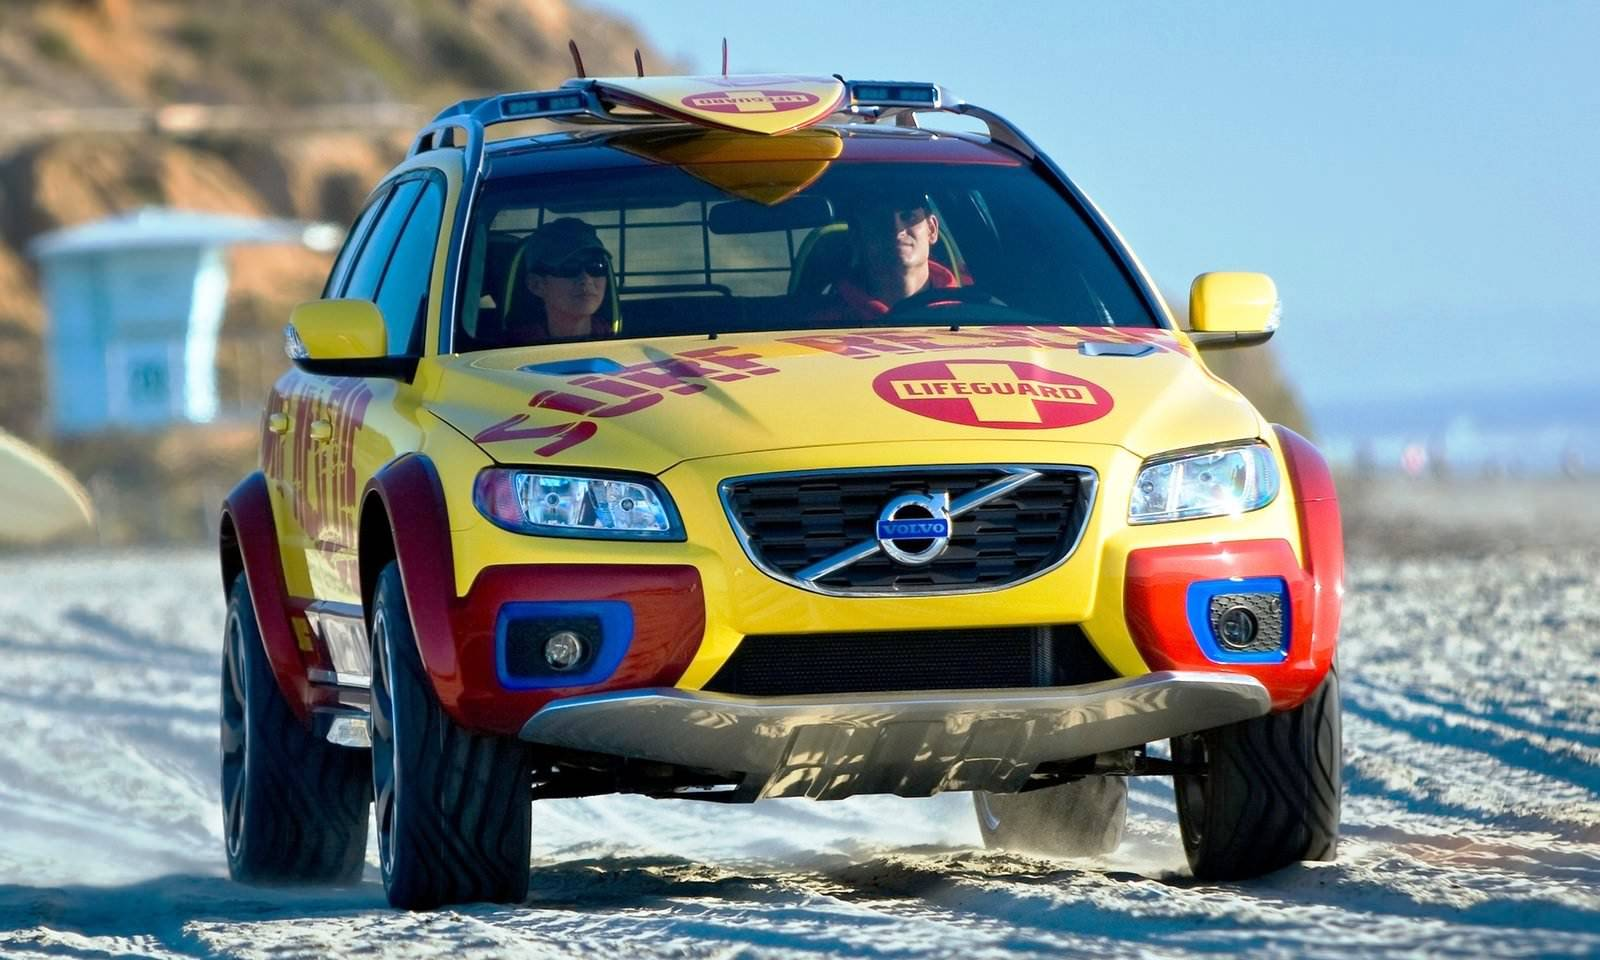 2005 Volvo Xc70 At And 2007 Xc70 Surf Rescue Are California